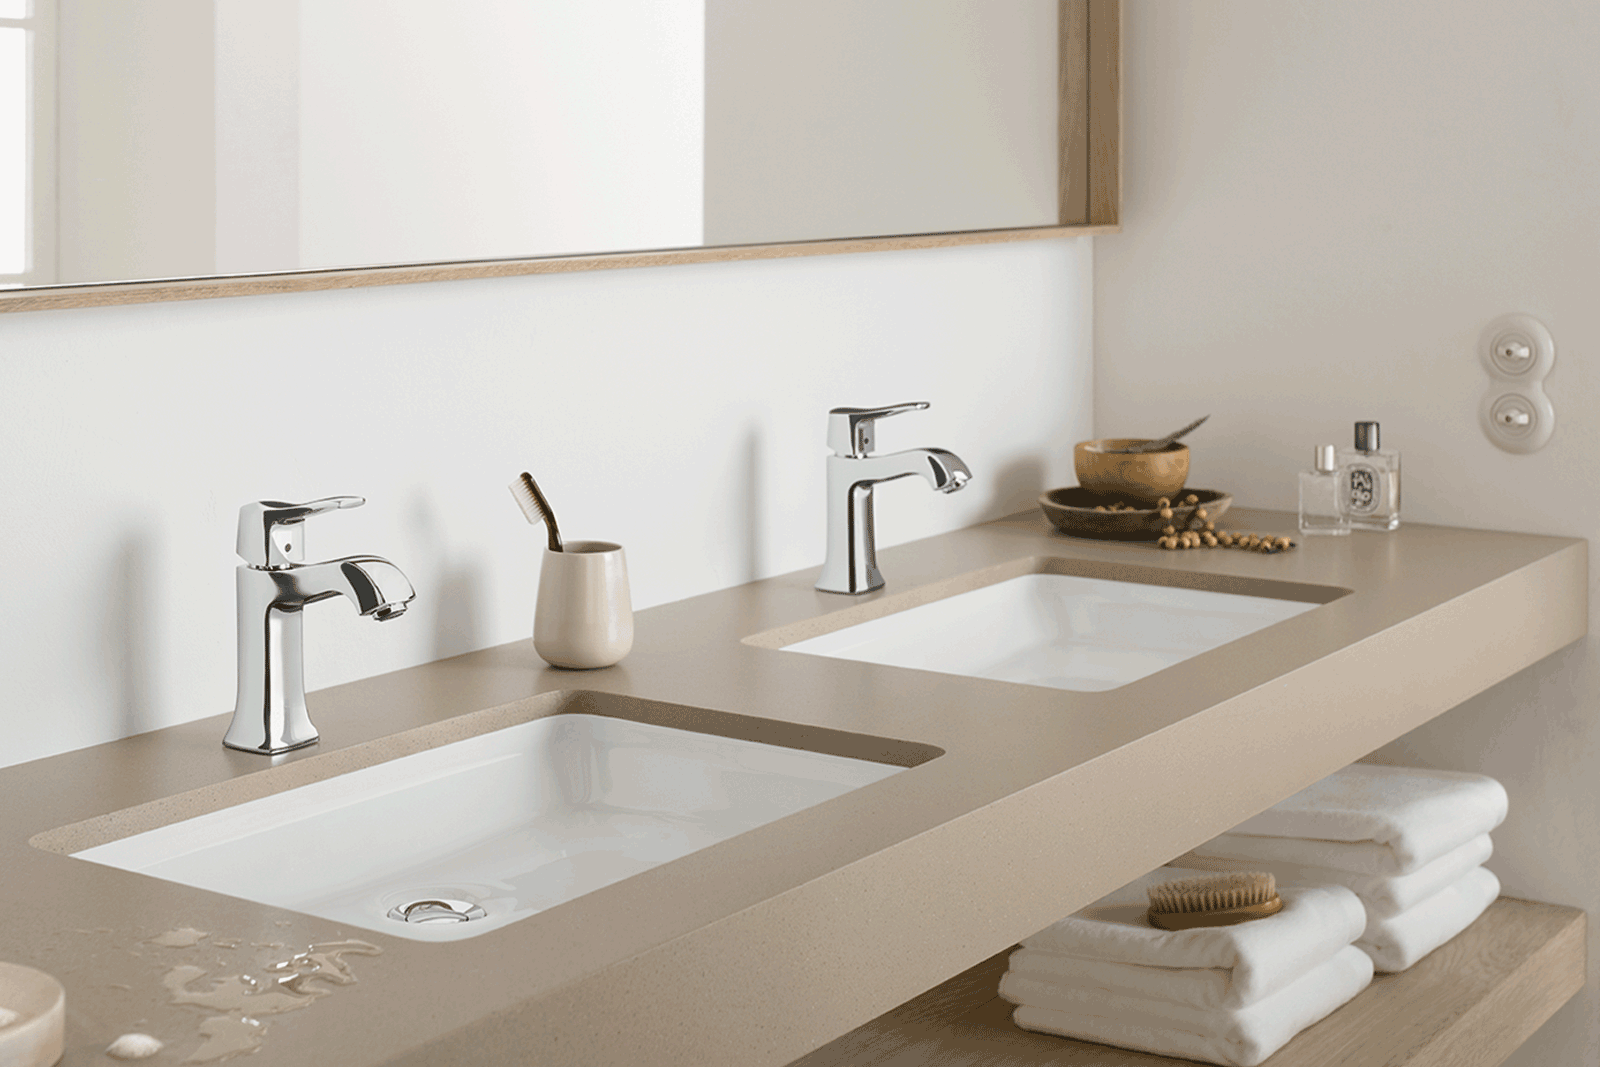 hansgrohe-sinks